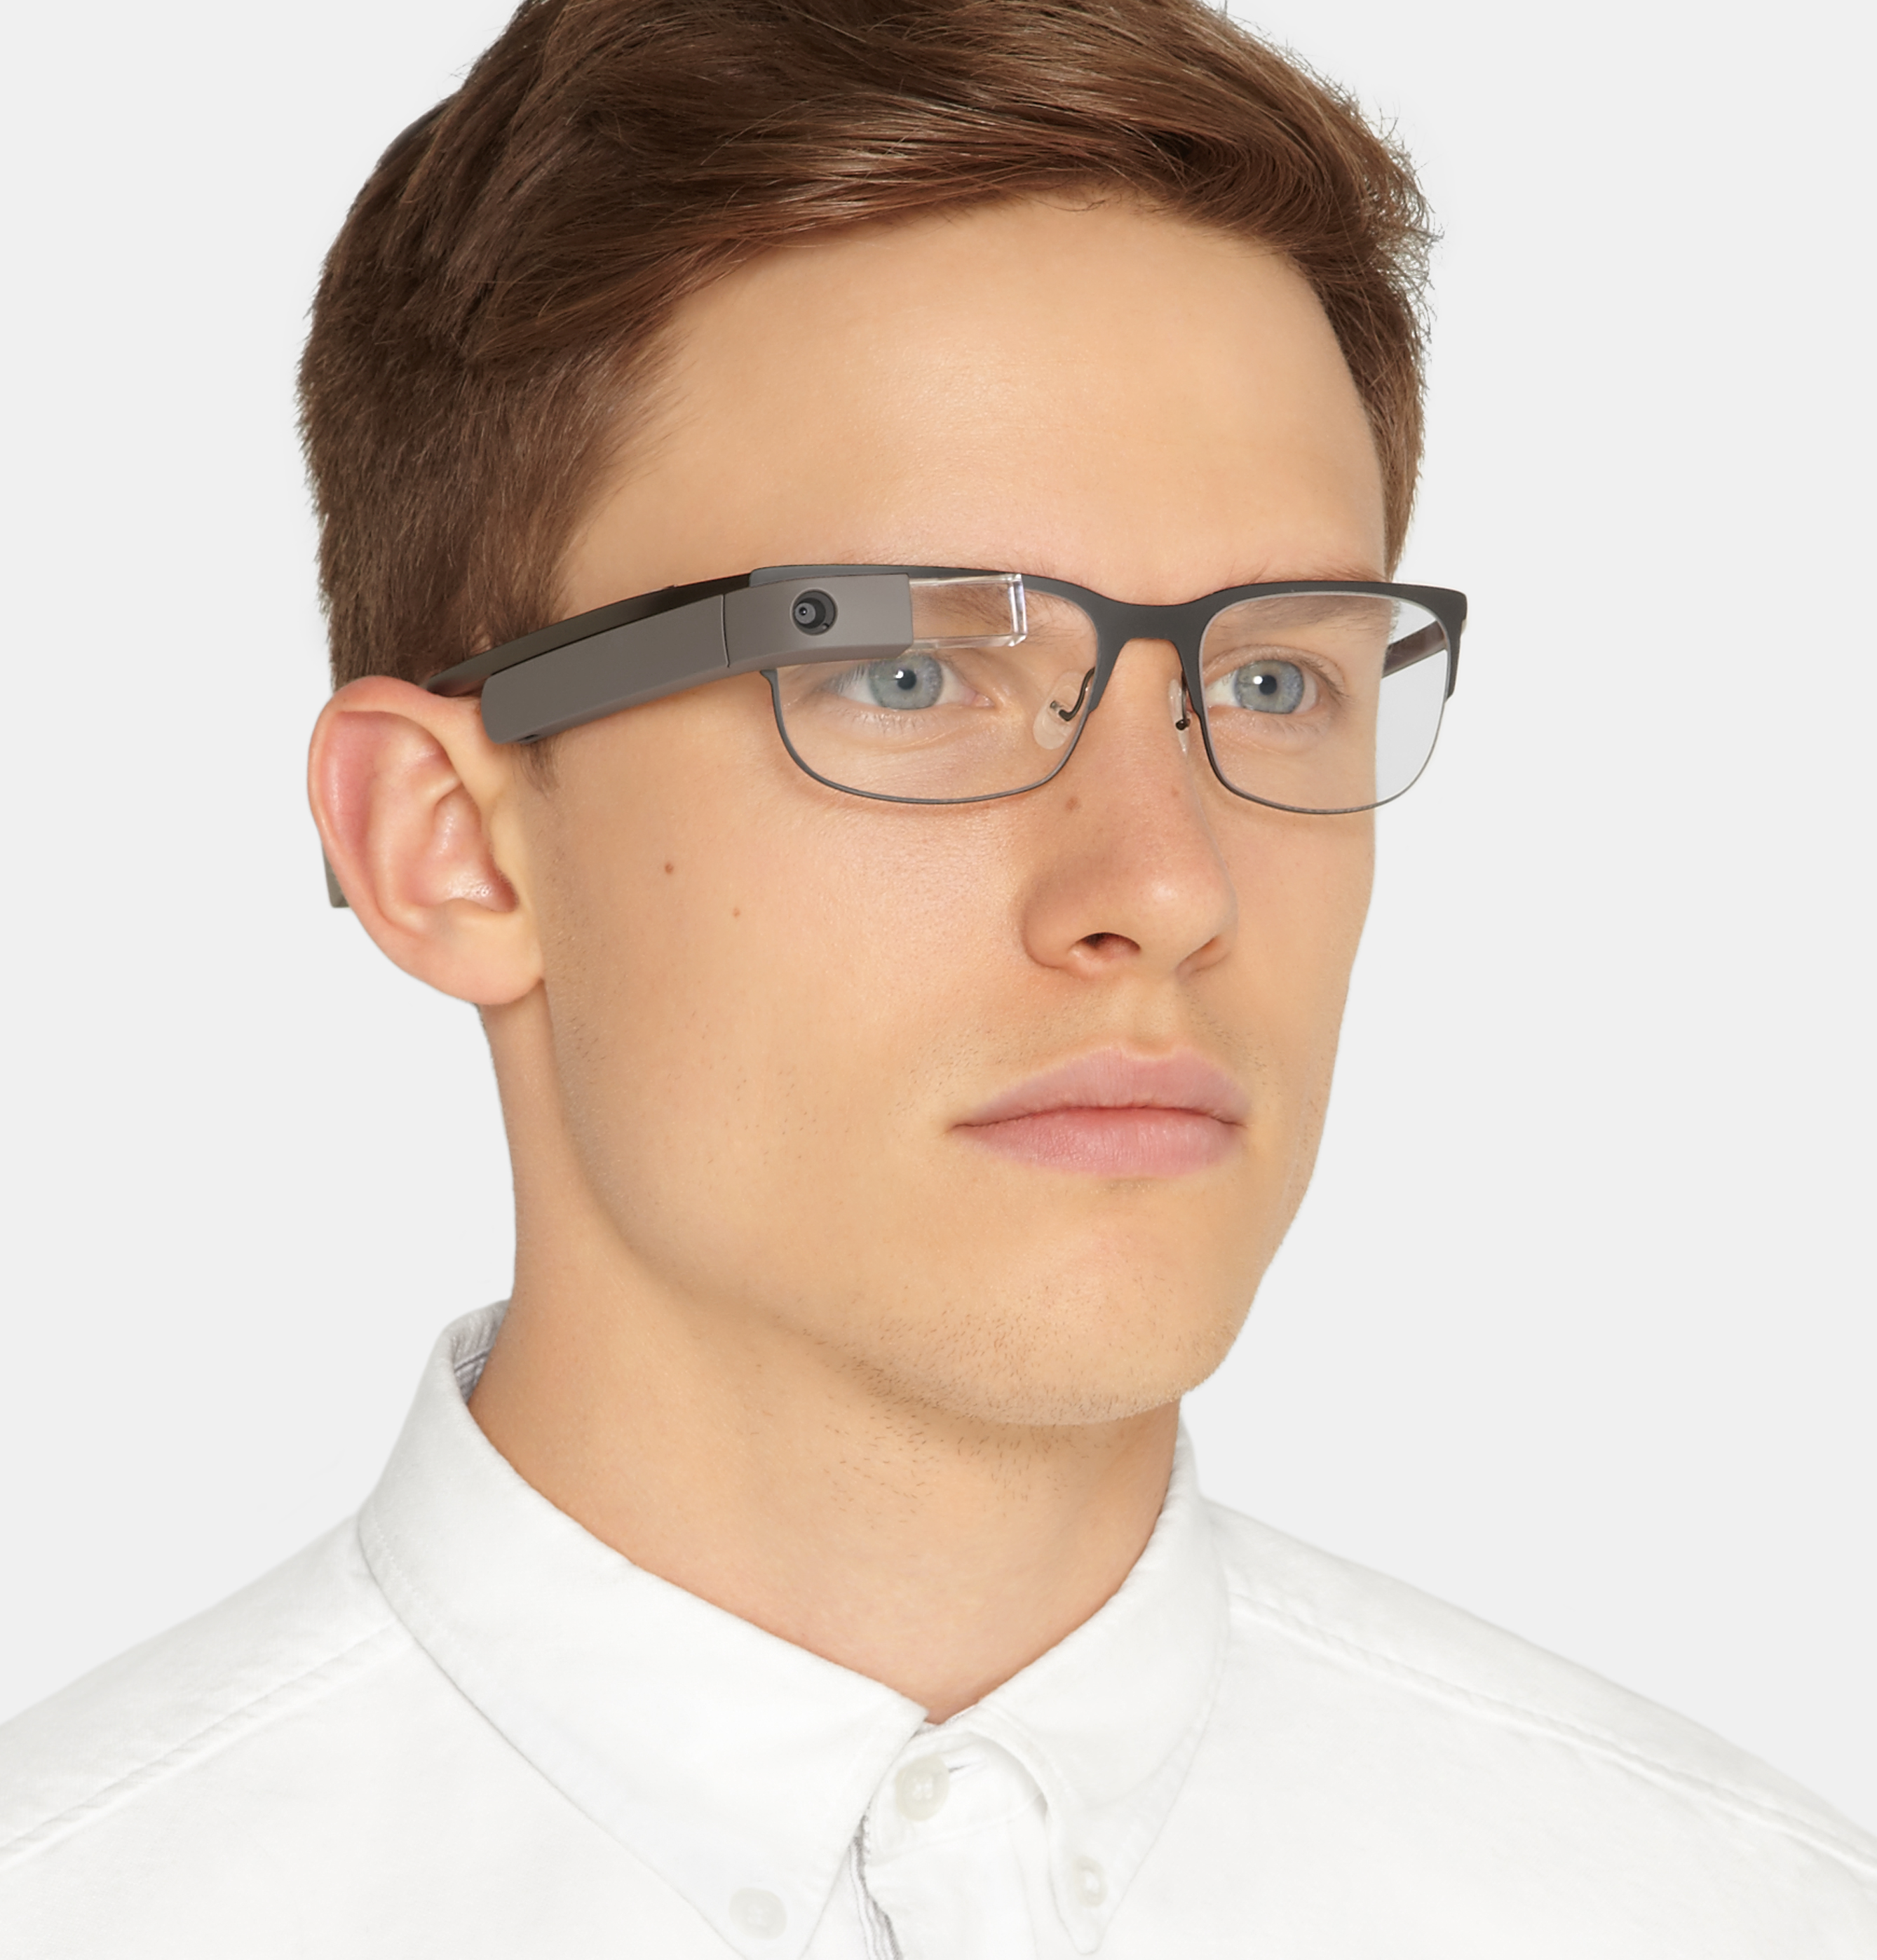 Le Meilleur Mr Porter Has You Covered For The Google Glass In The Uk Ce Mois Ci